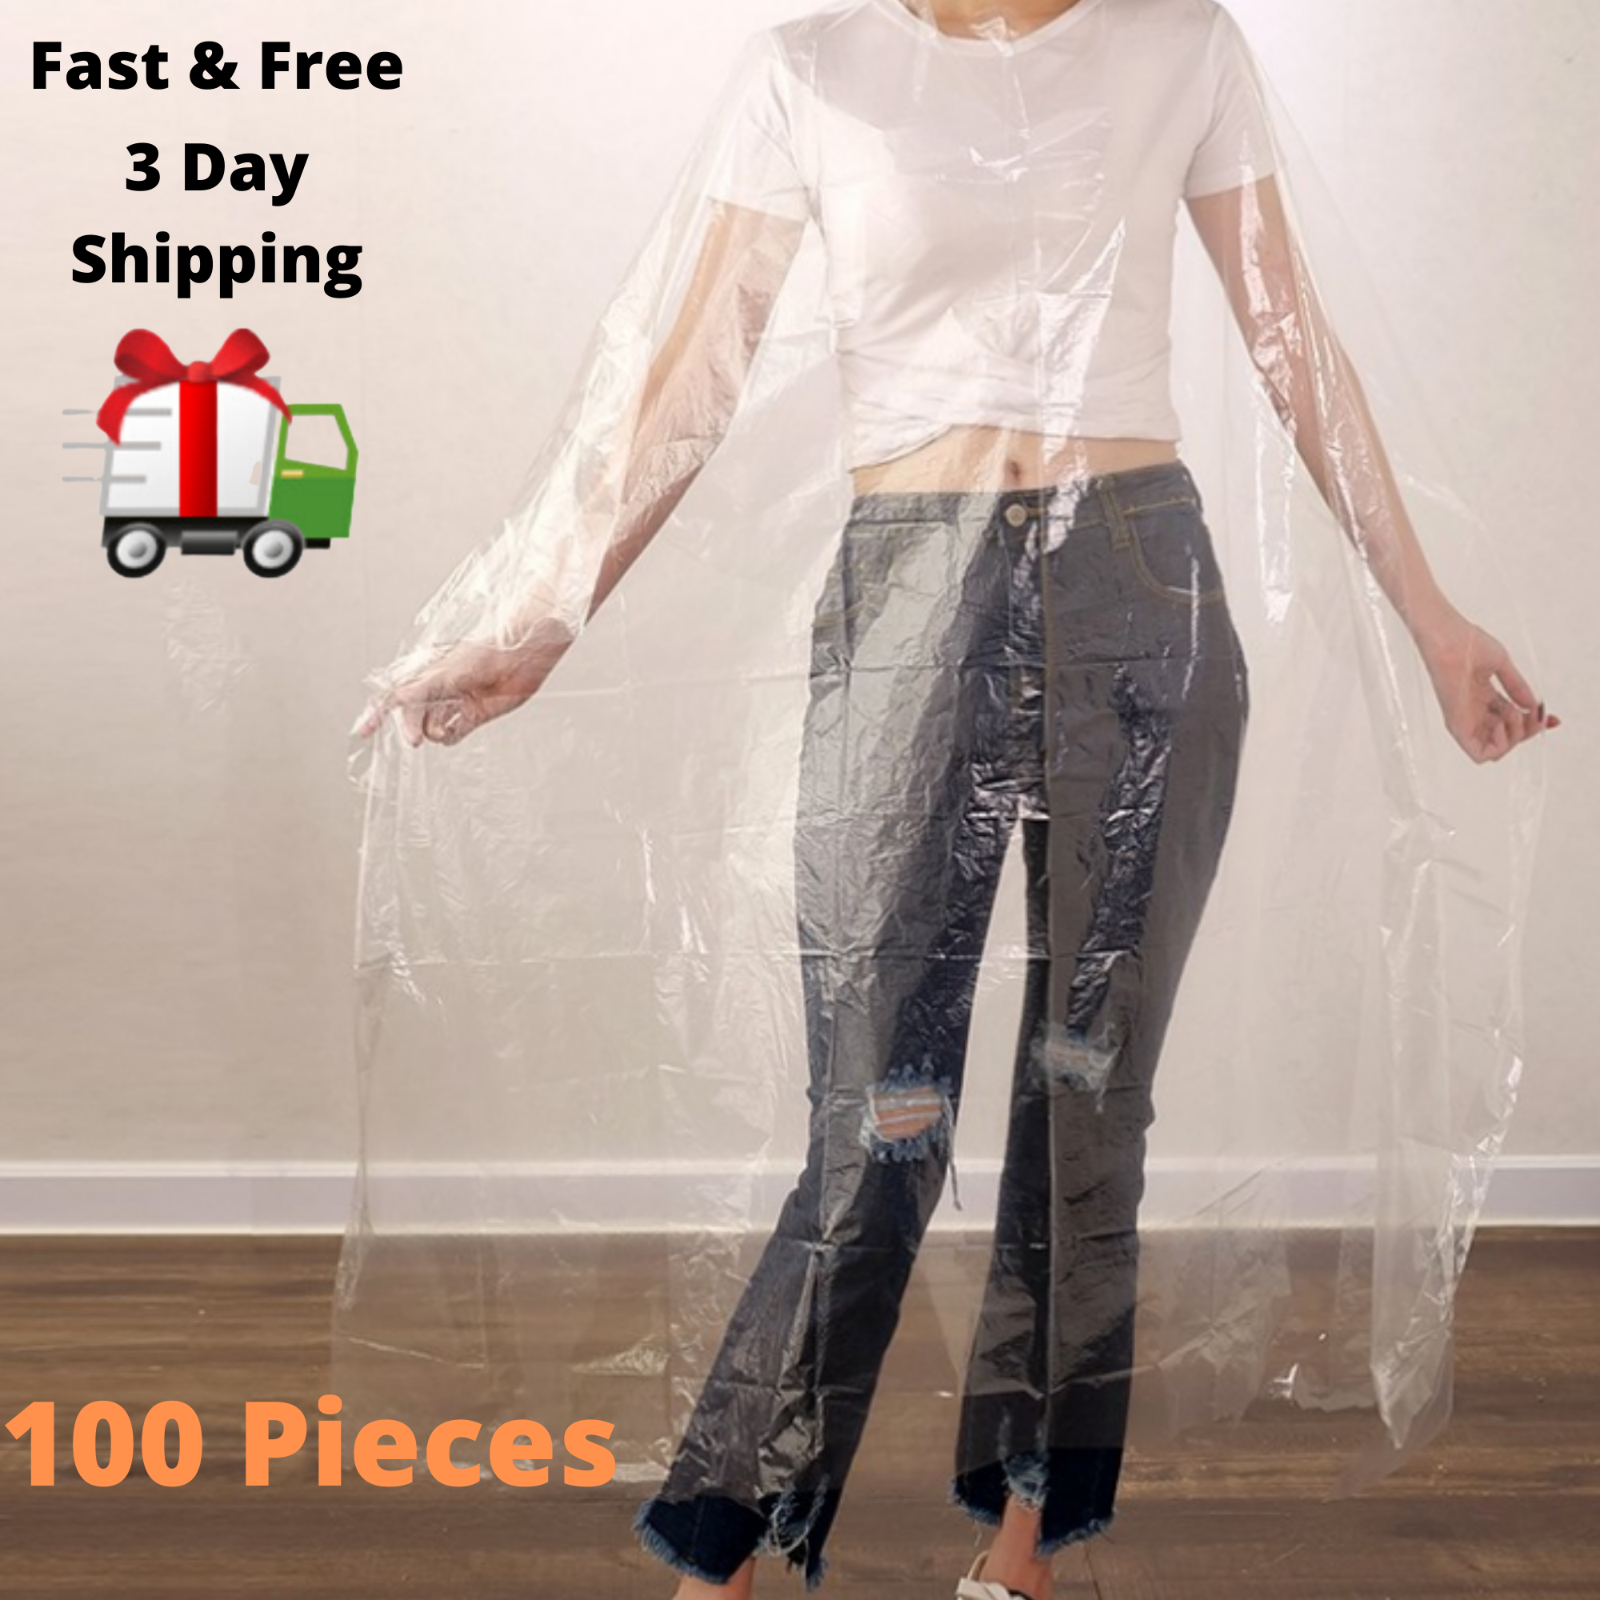 100 Pieces Disposable Hair Cutting Capes Hairdressing Barber